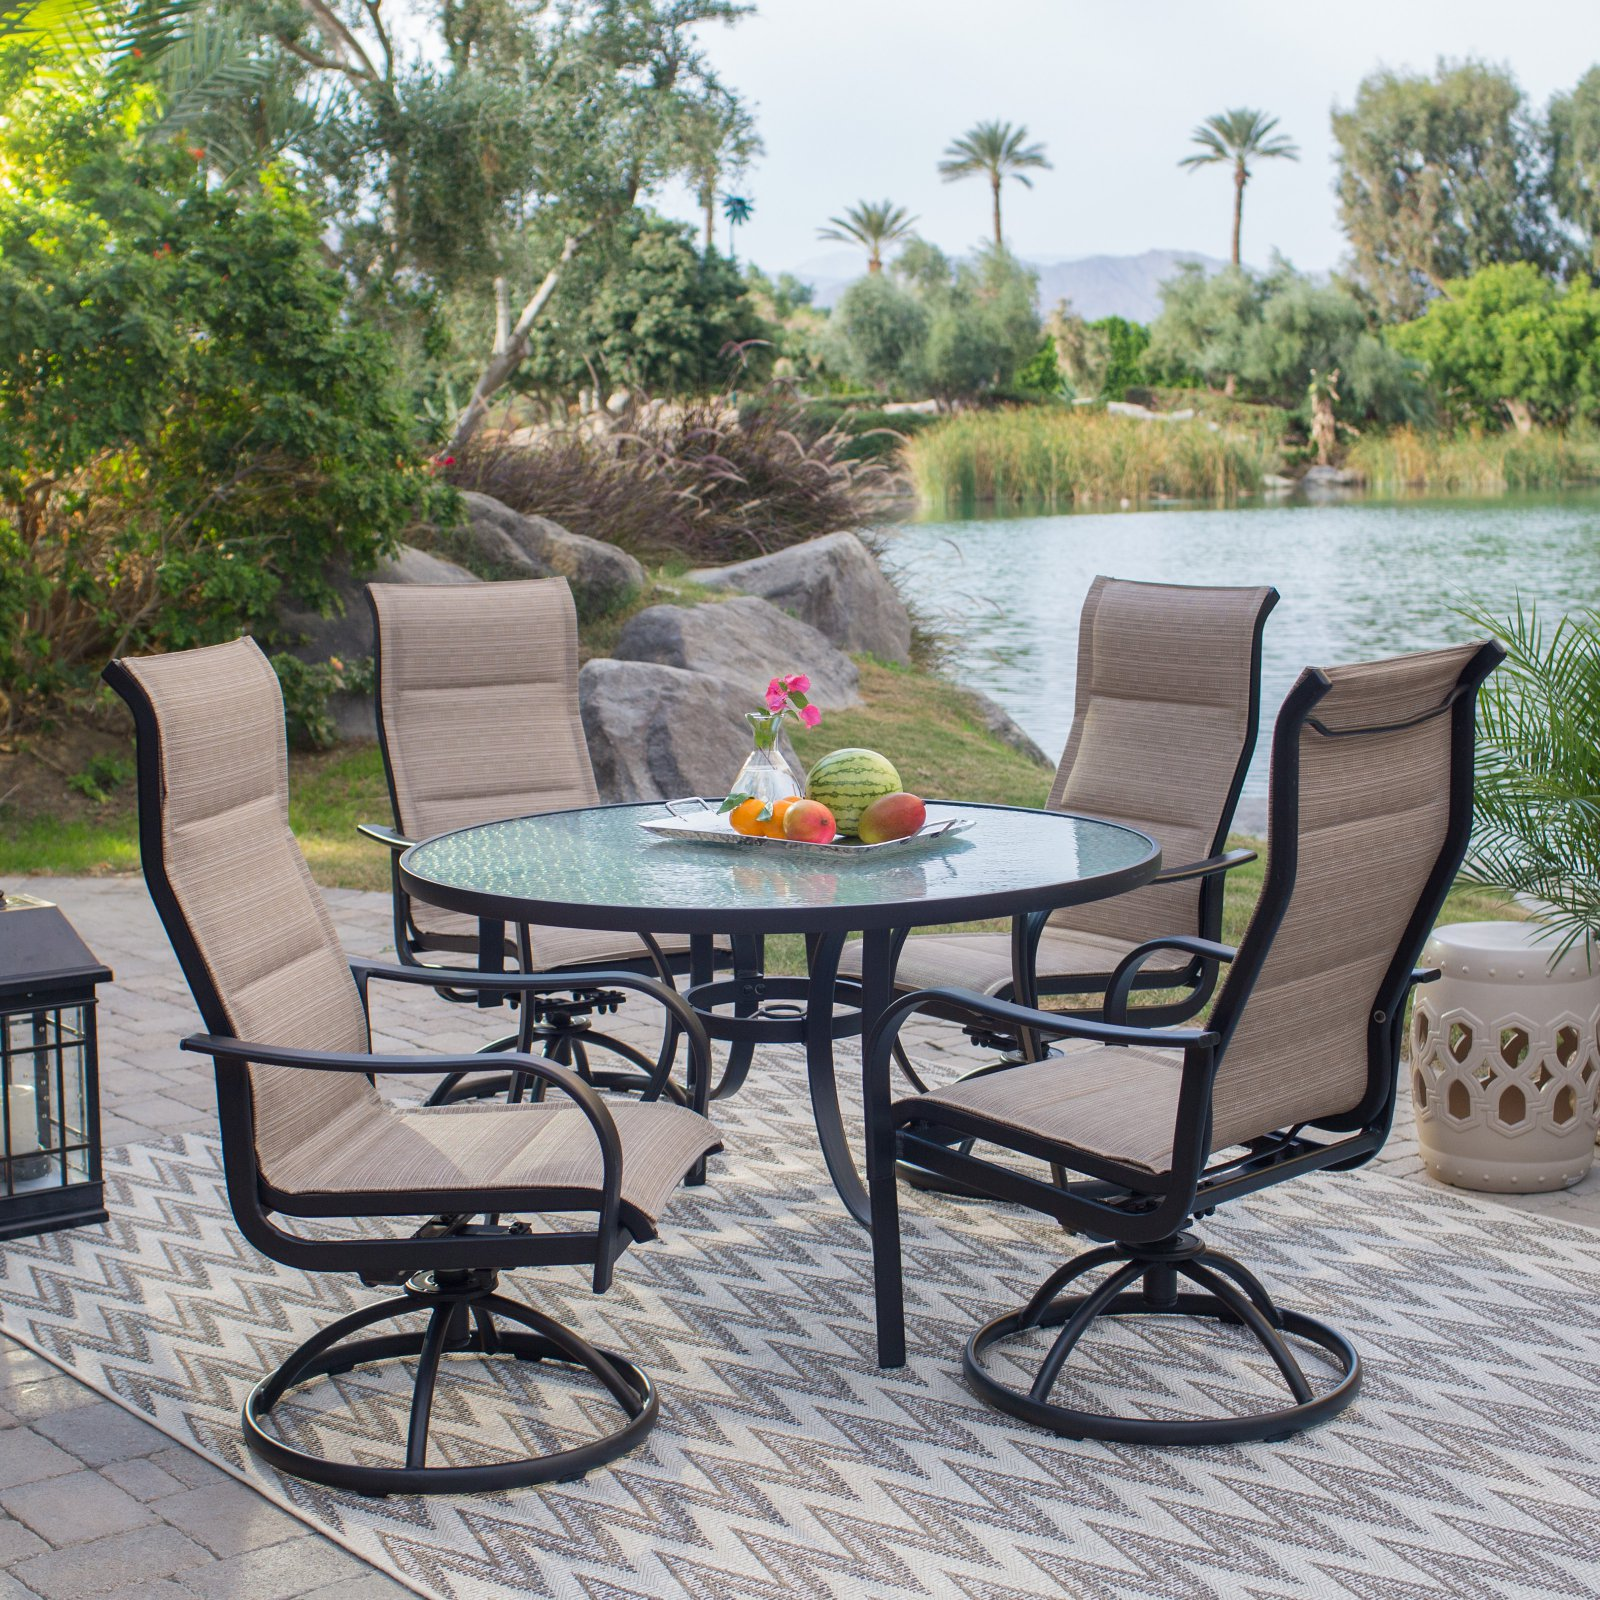 Coral Coast Wimberley Deluxe Padded Sling Rocker 5 Piece Patio Dining Set